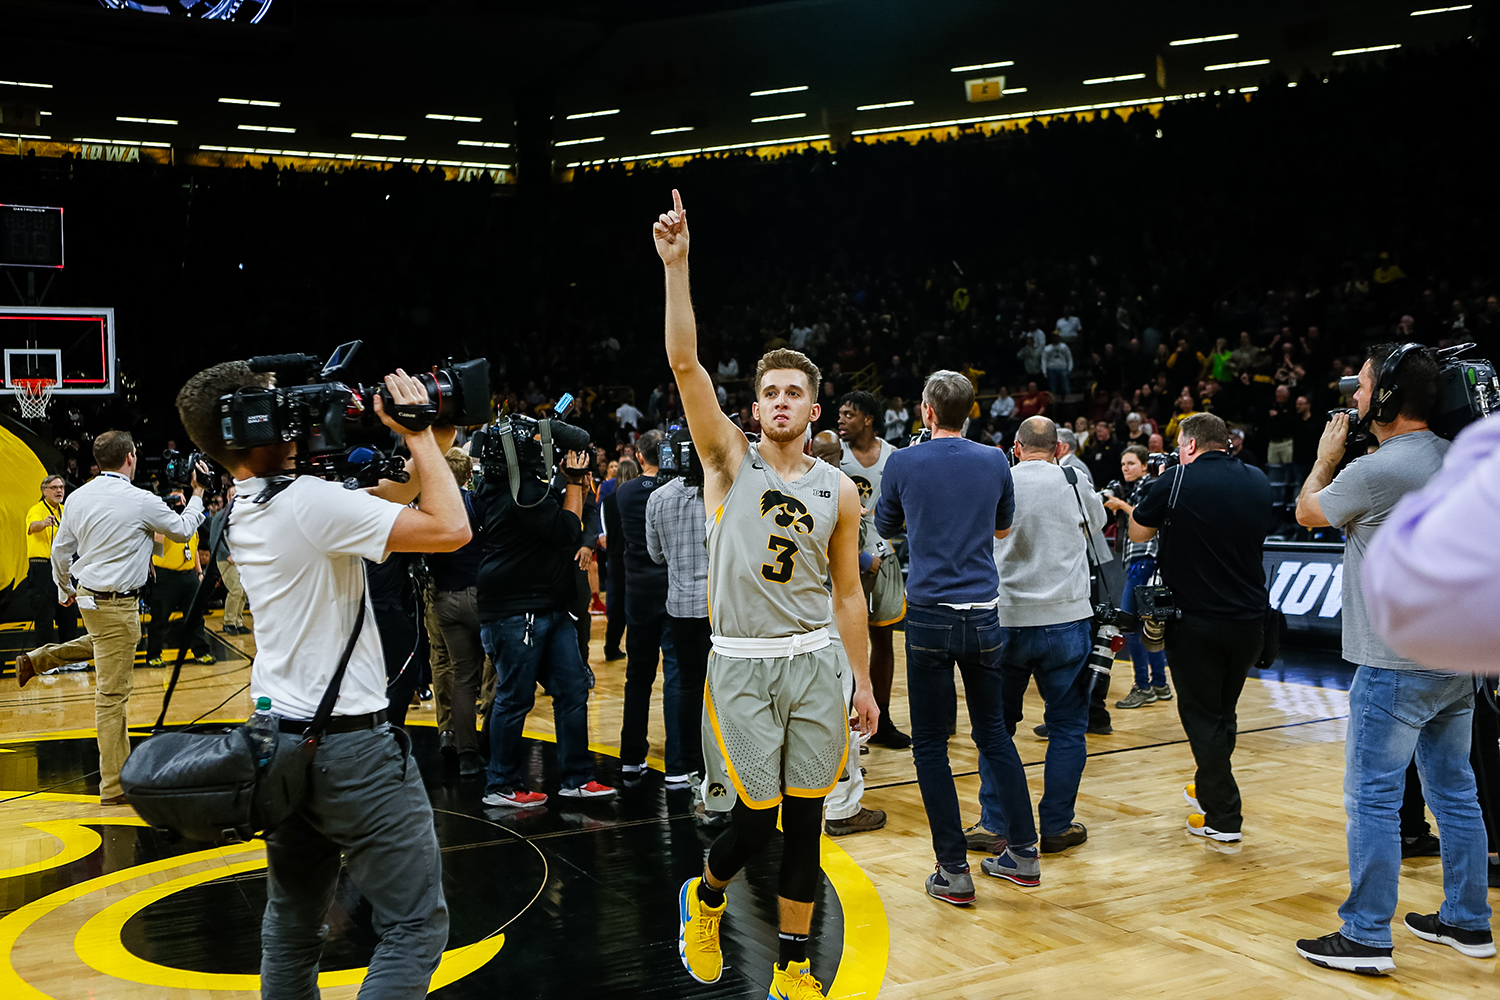 Iowa guard Jordan Bohannon celebrates after Iowa's game against Iowa State at Carver-Hawkeye Arena on December 6, 2018. The Hawkeyes defeated the Cyclones 98-84.